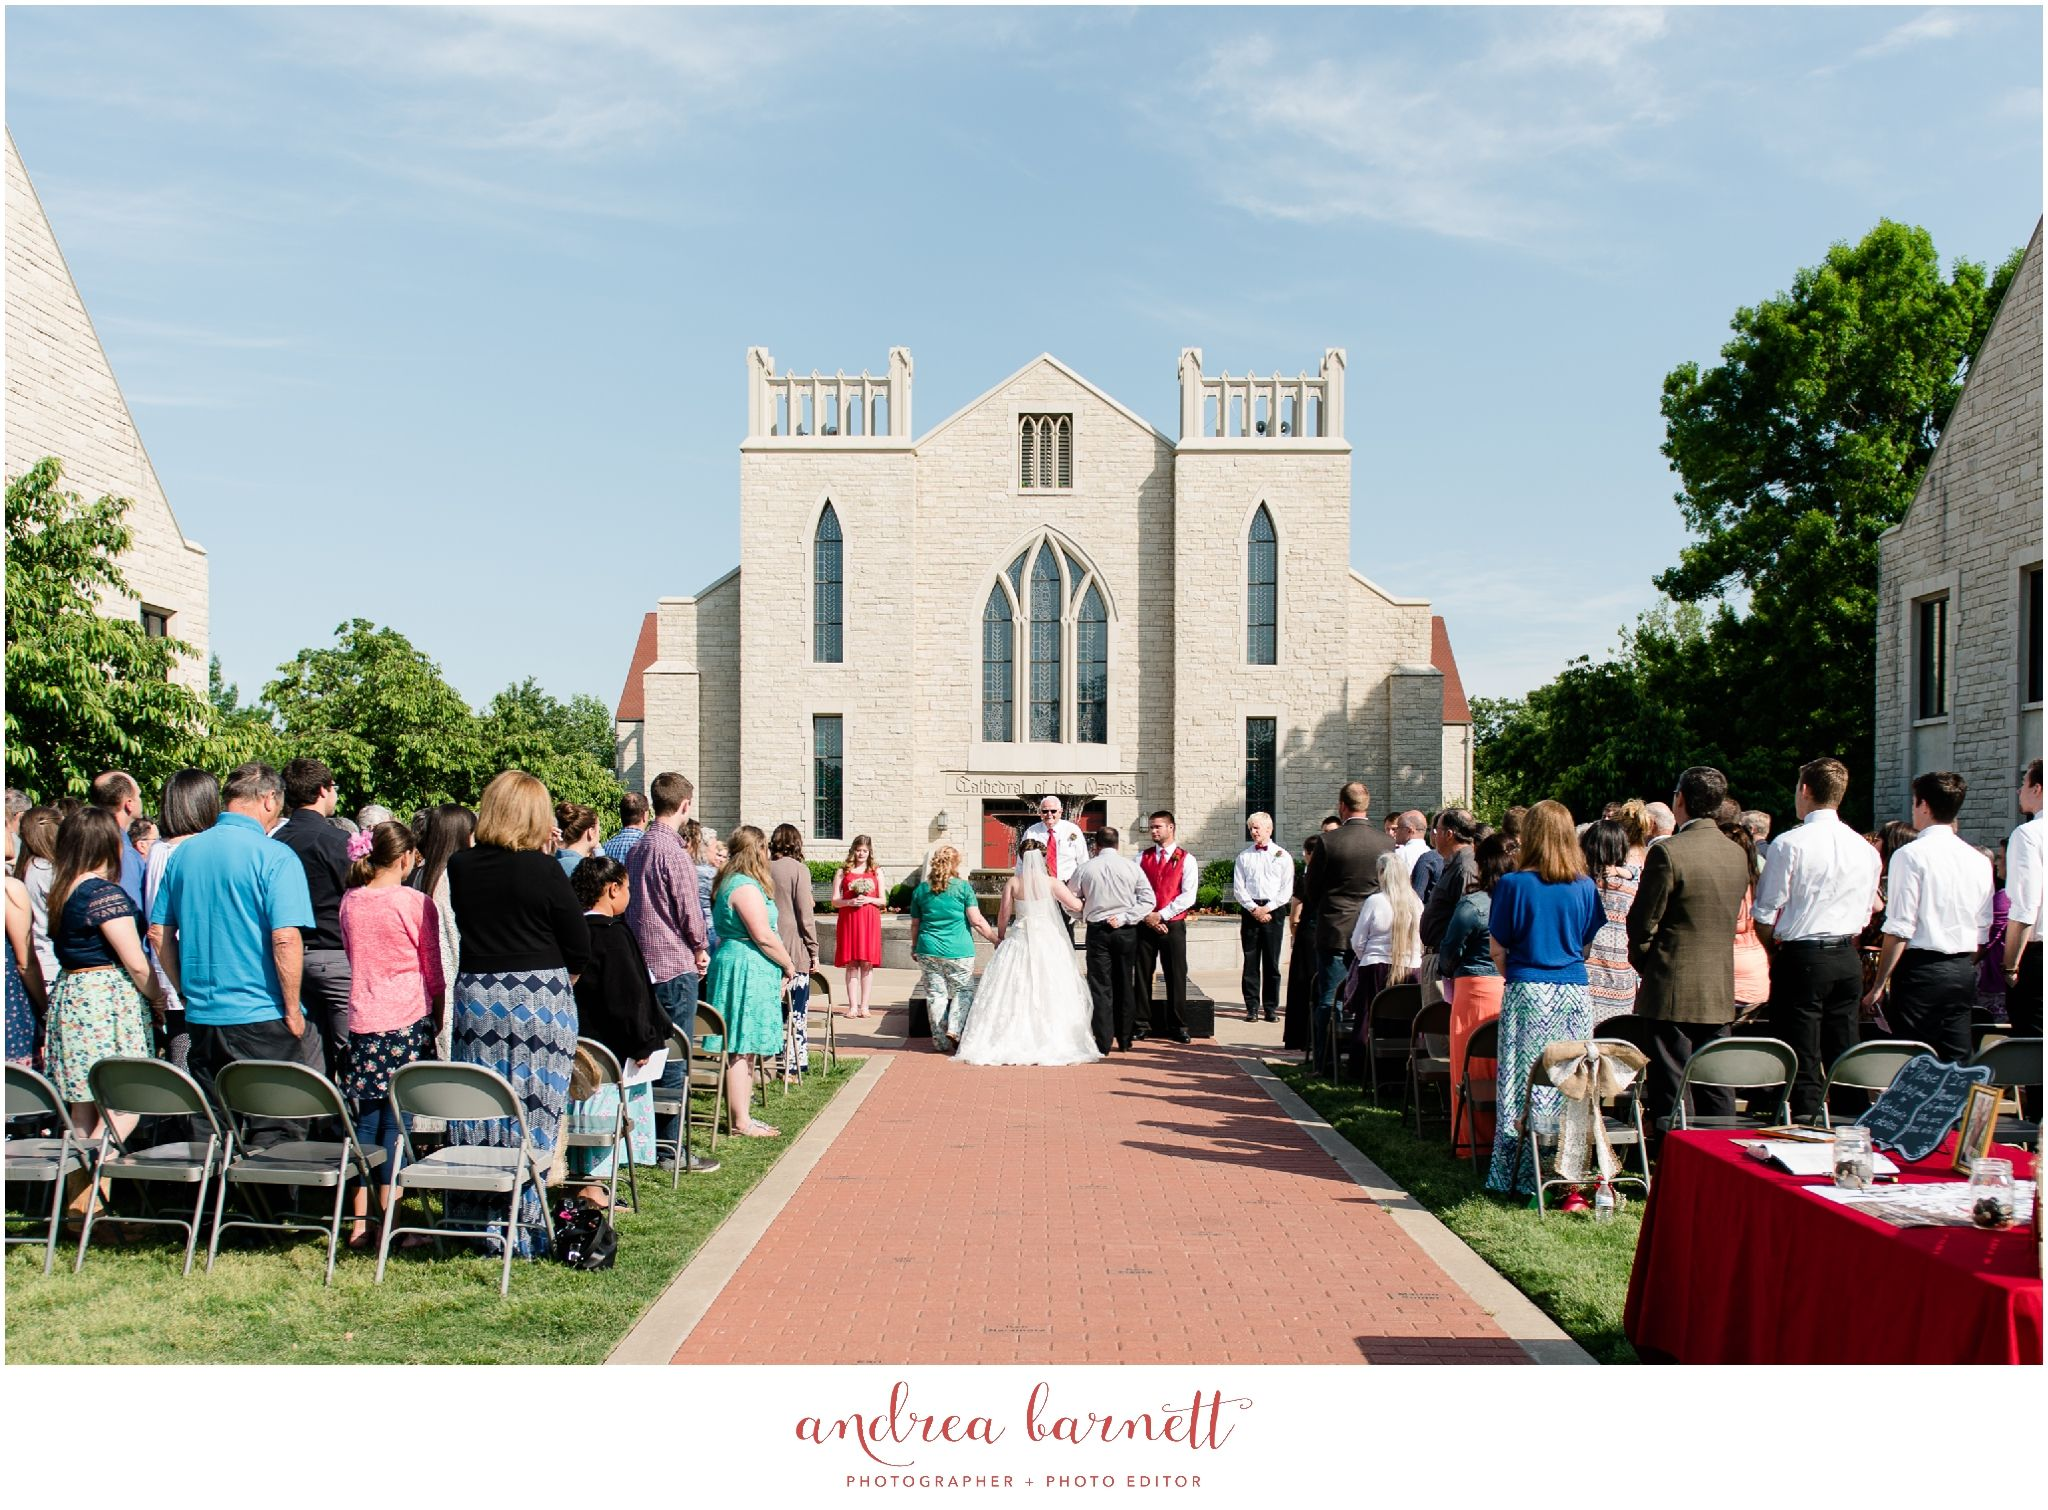 Outdoor Wedding At John Brown University Cathedral Of The Ozarks In